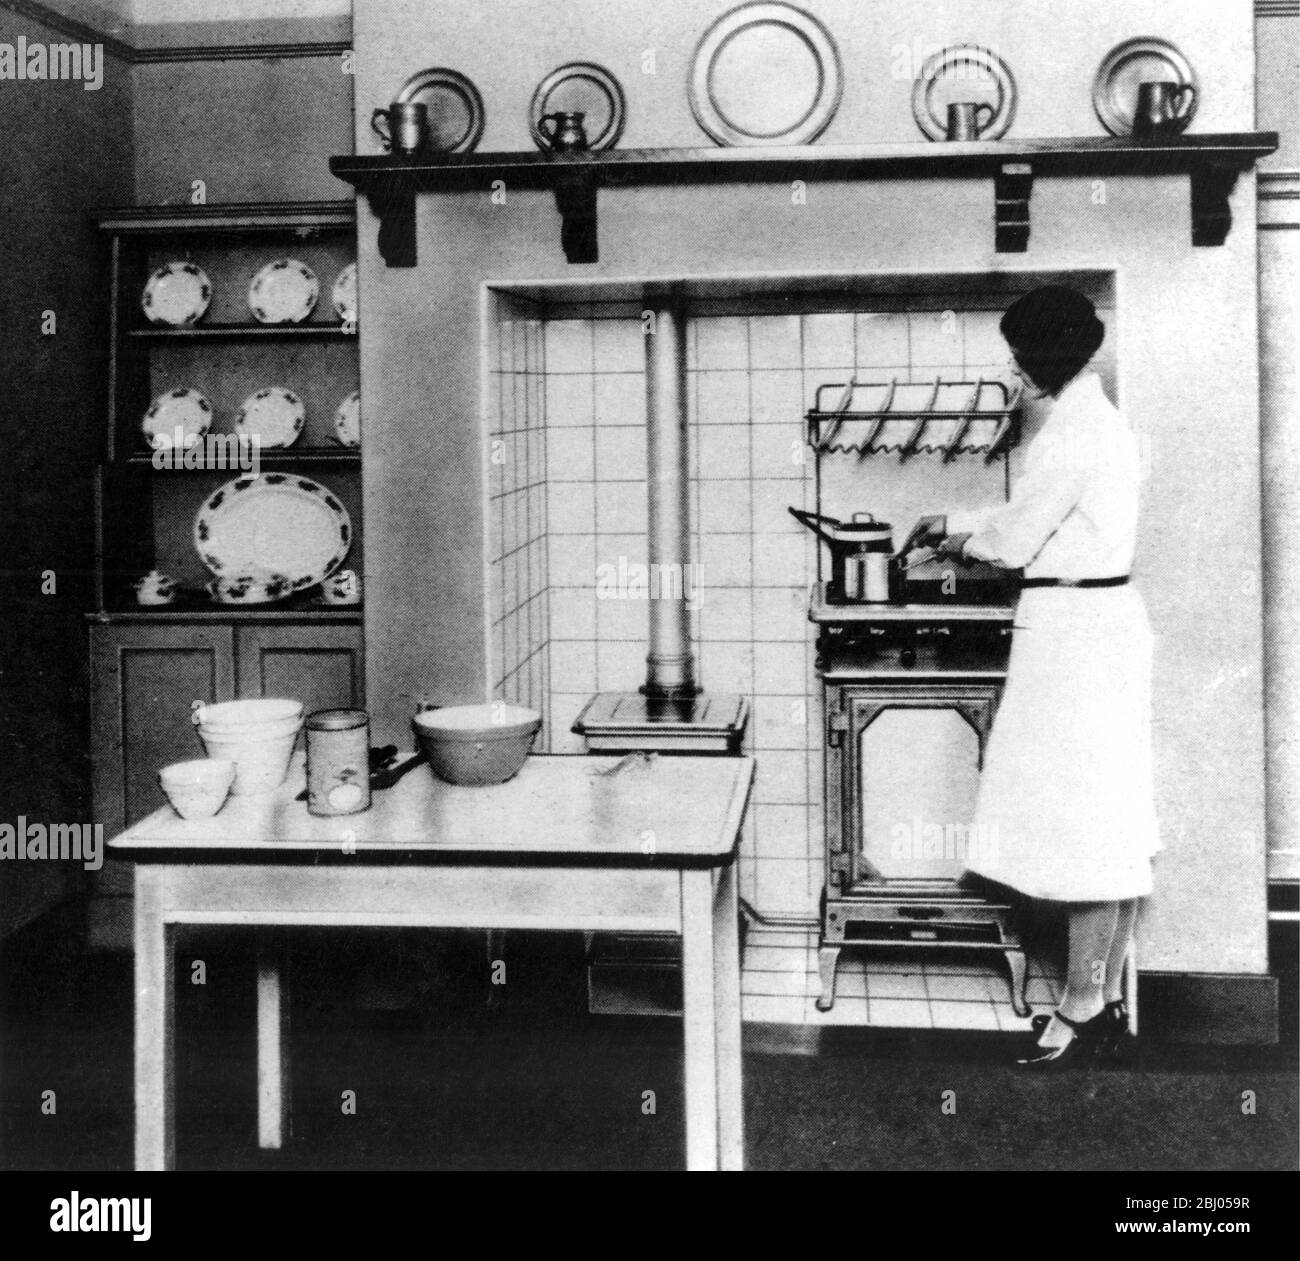 19s Kitchen High Resolution Stock Photography and Images - Alamy